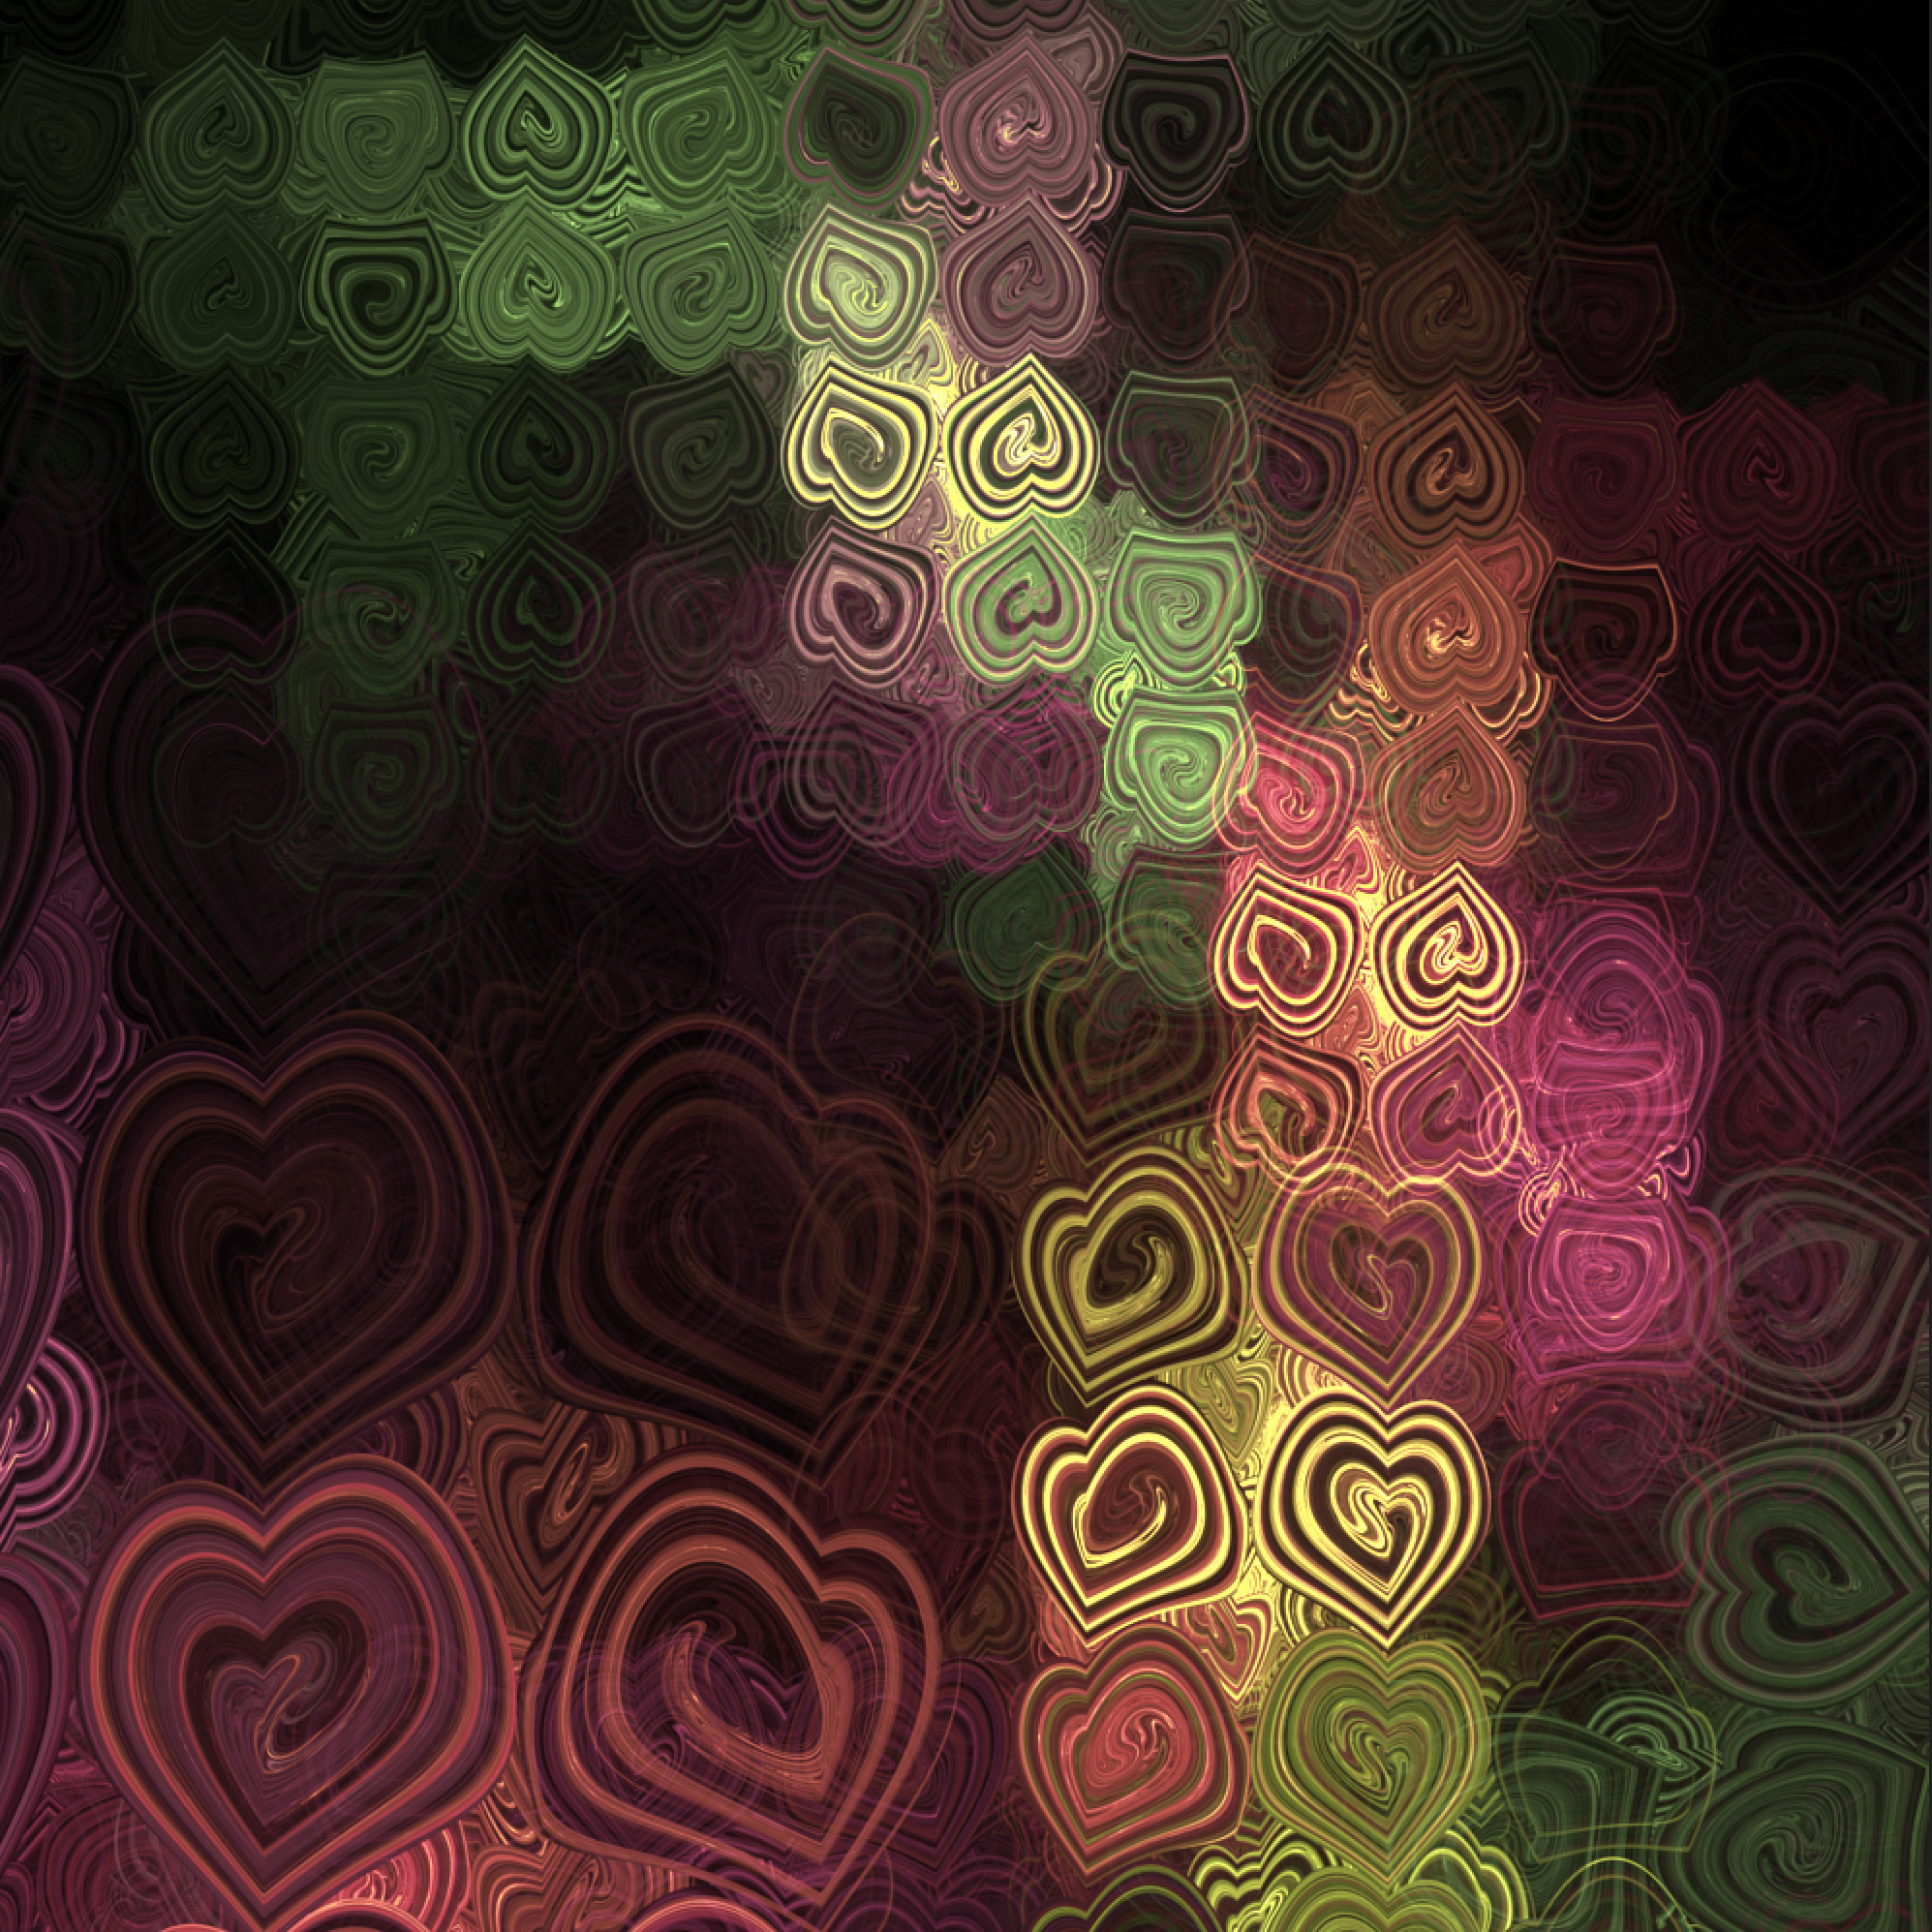 hearttt - fractal, chaotica, abstract - alexmclaren | ello